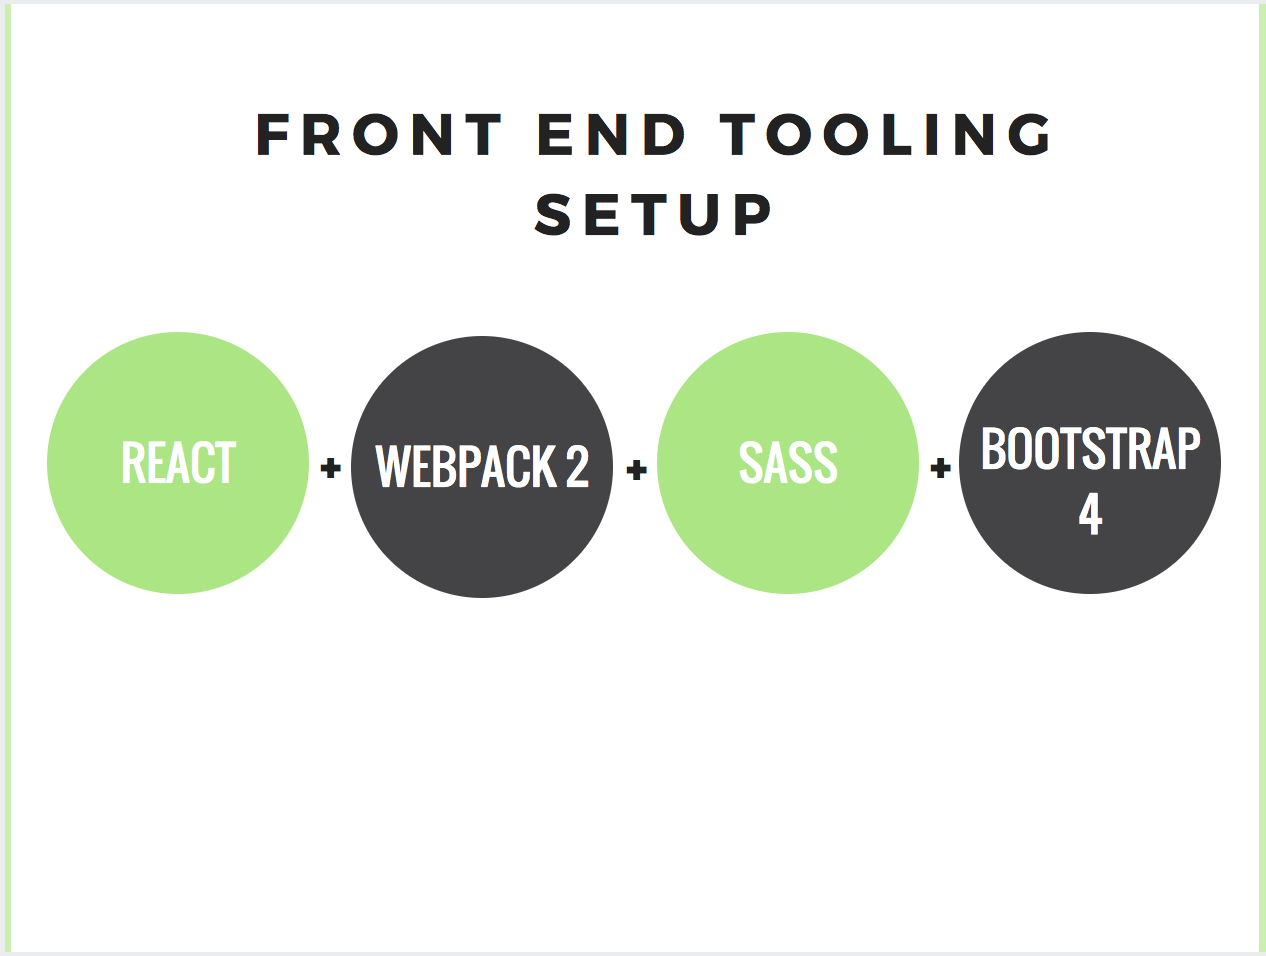 Front End Tooling Setup With React + Webpack 2 + Sass + Bootstrap 4